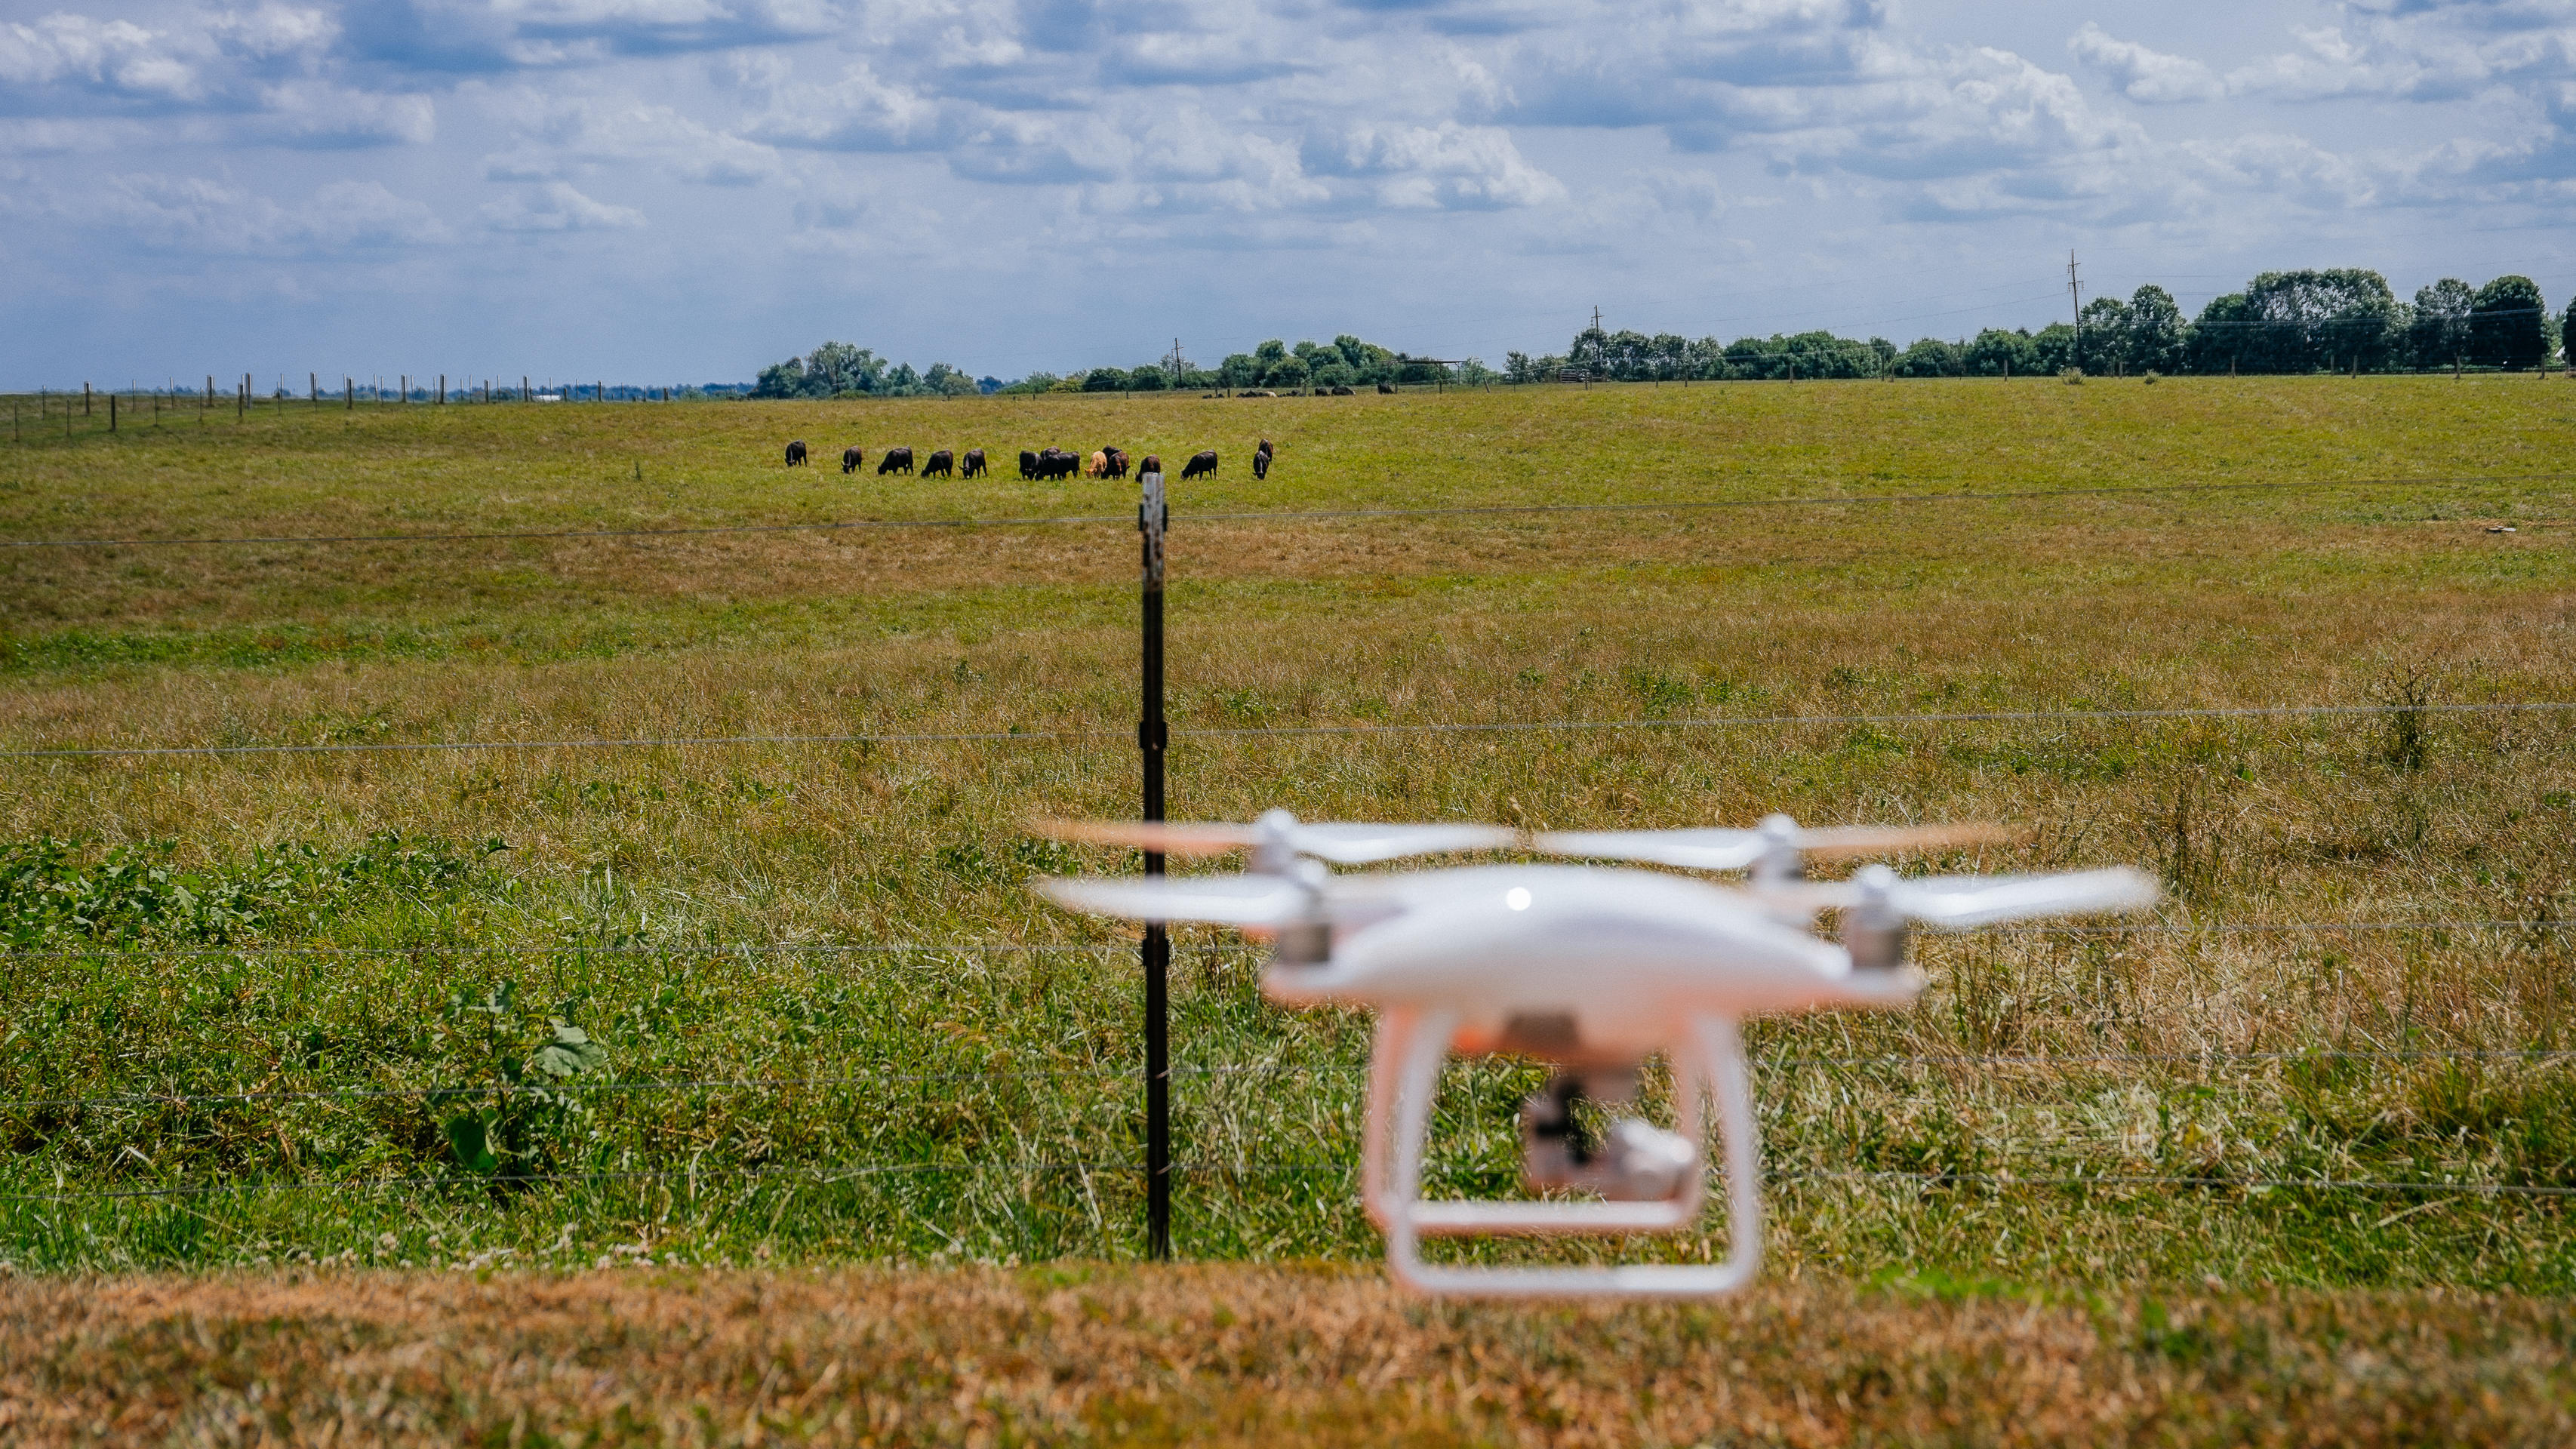 cattle-drones-43